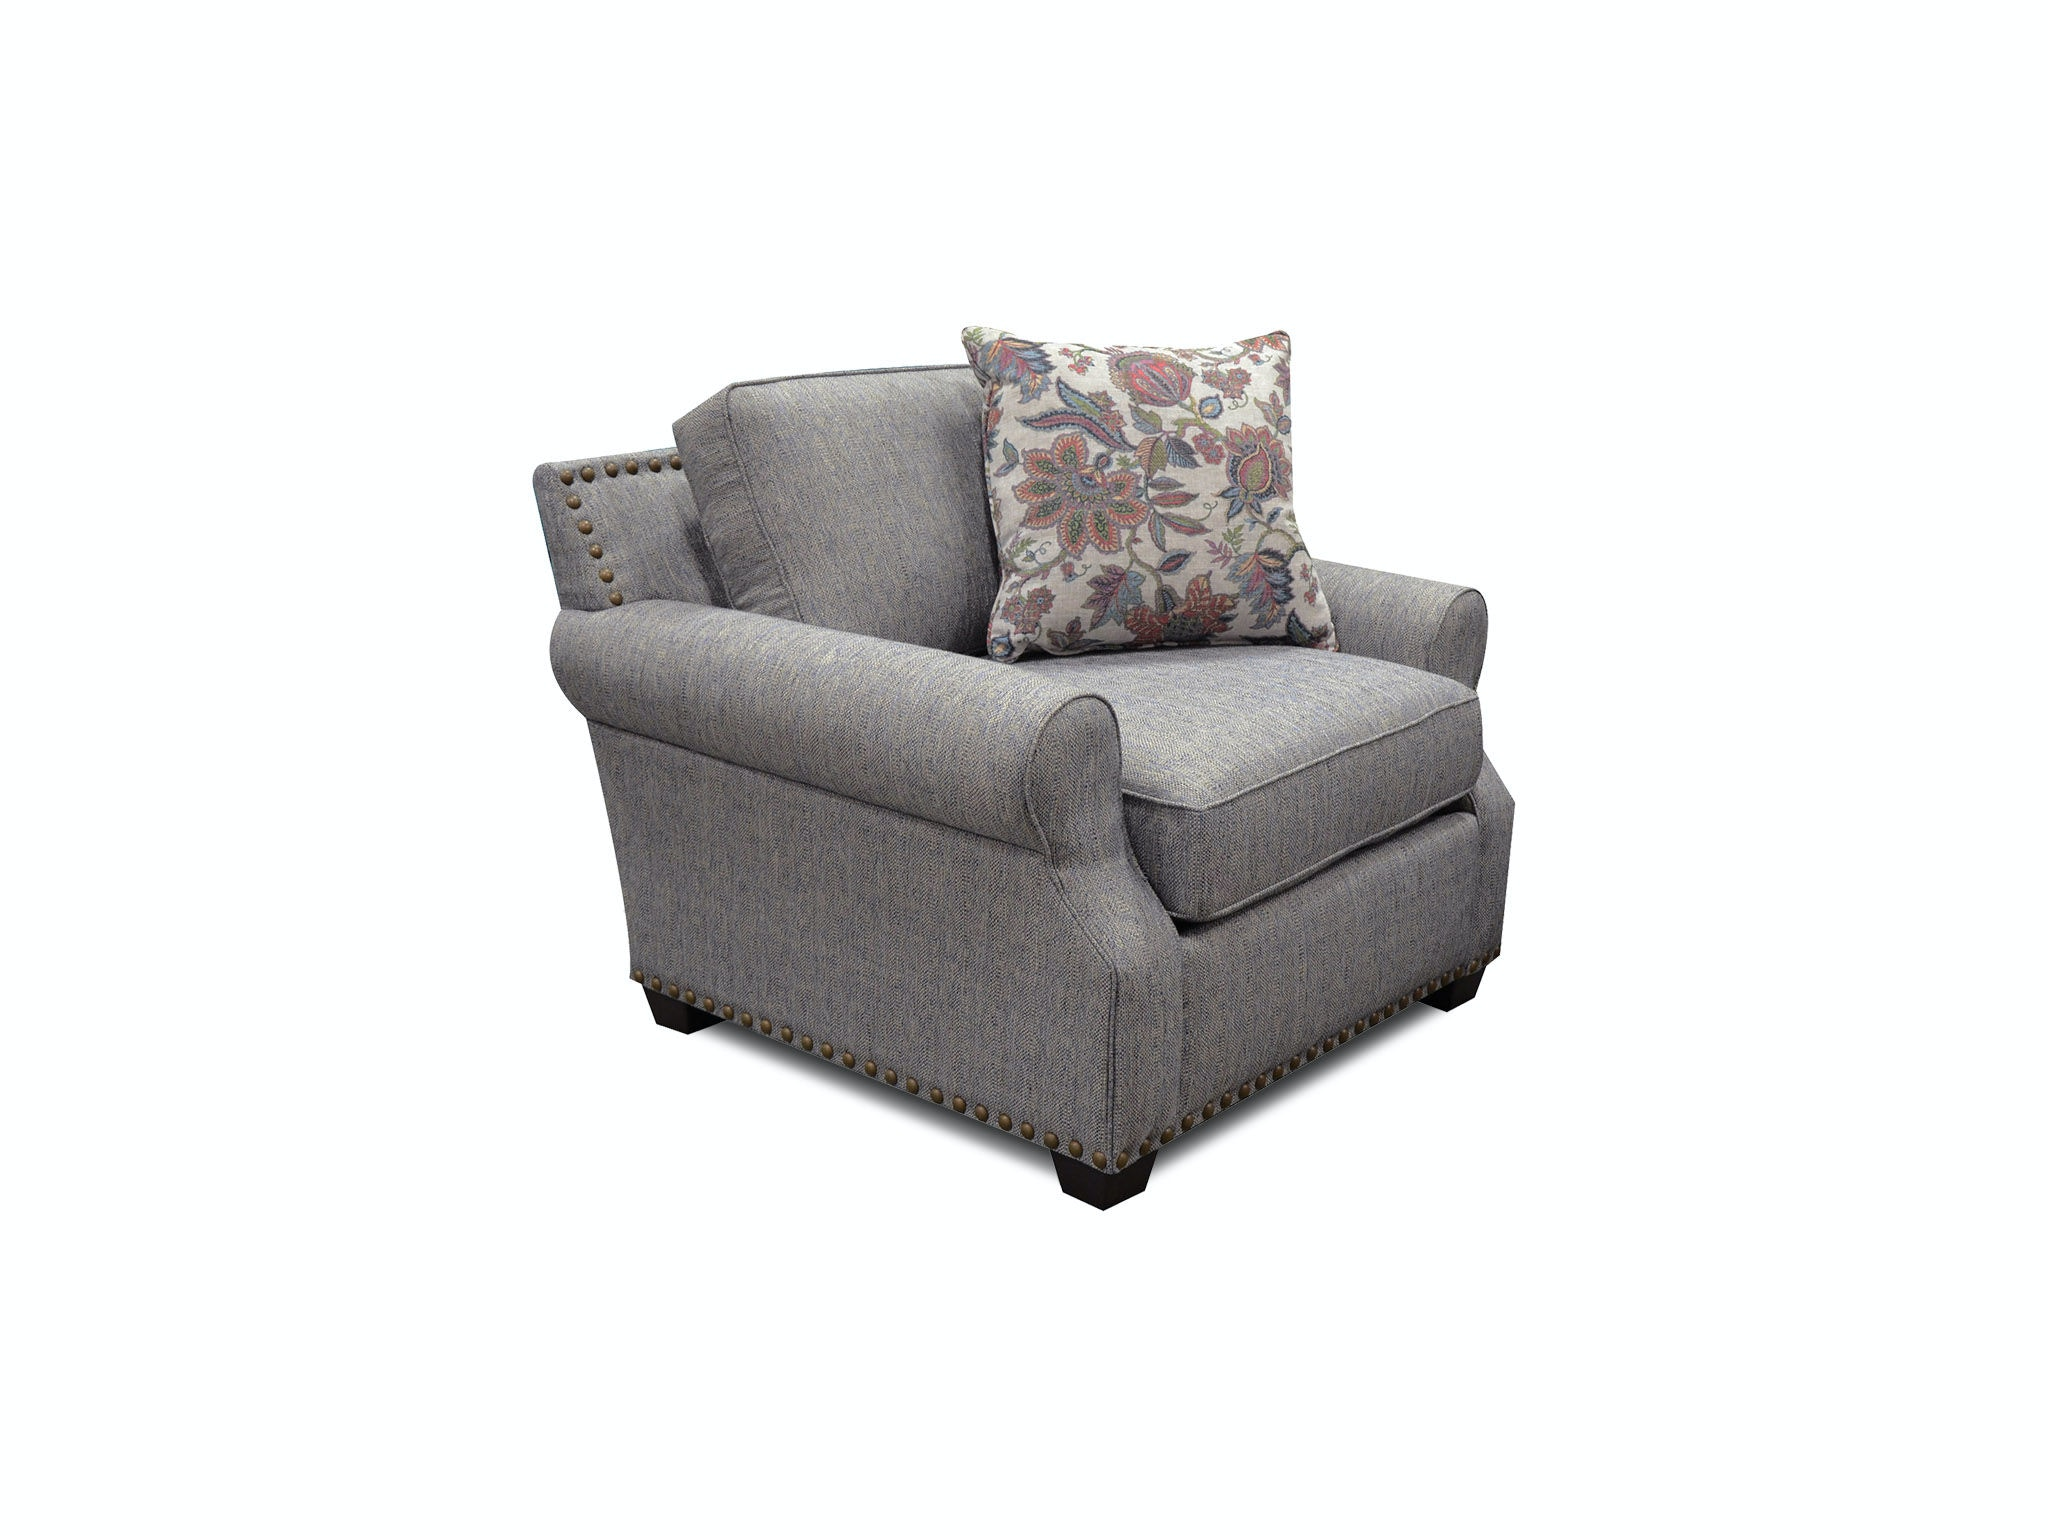 England Adele Chair With Nails 5L04N